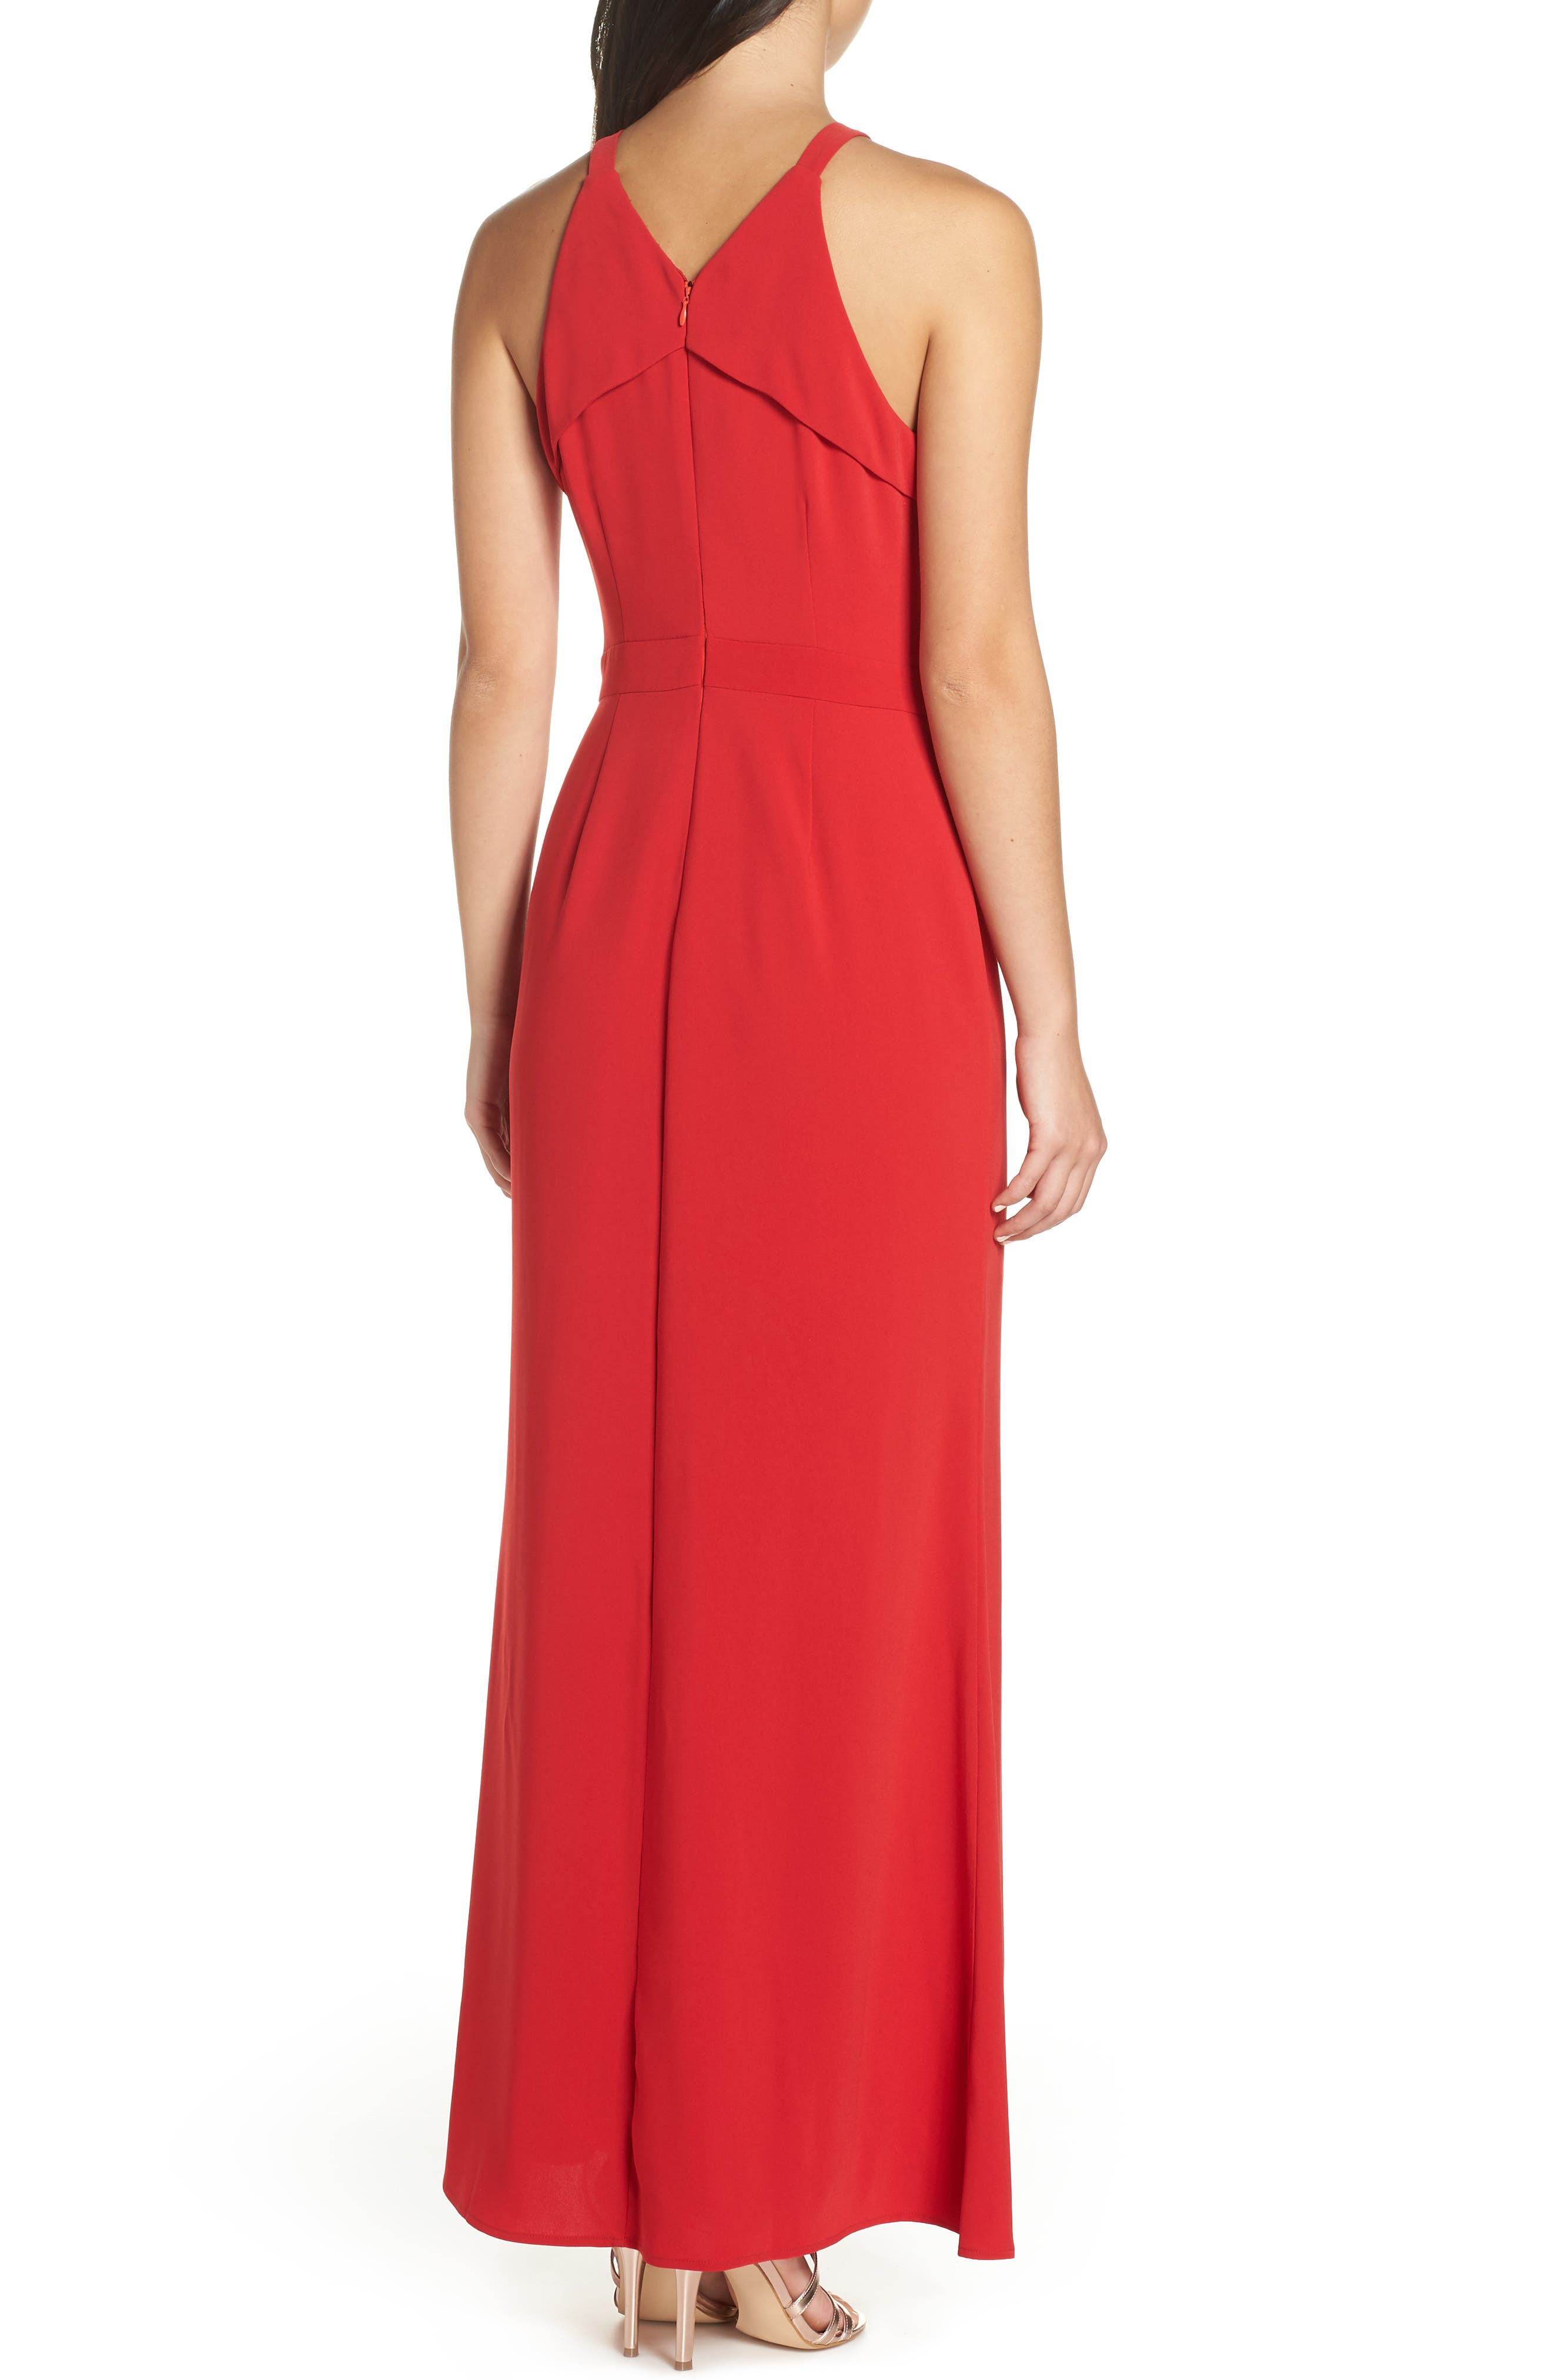 HARLYN,                             Keyhole Bodice Gown,                             Alternate thumbnail 2, color,                             RED